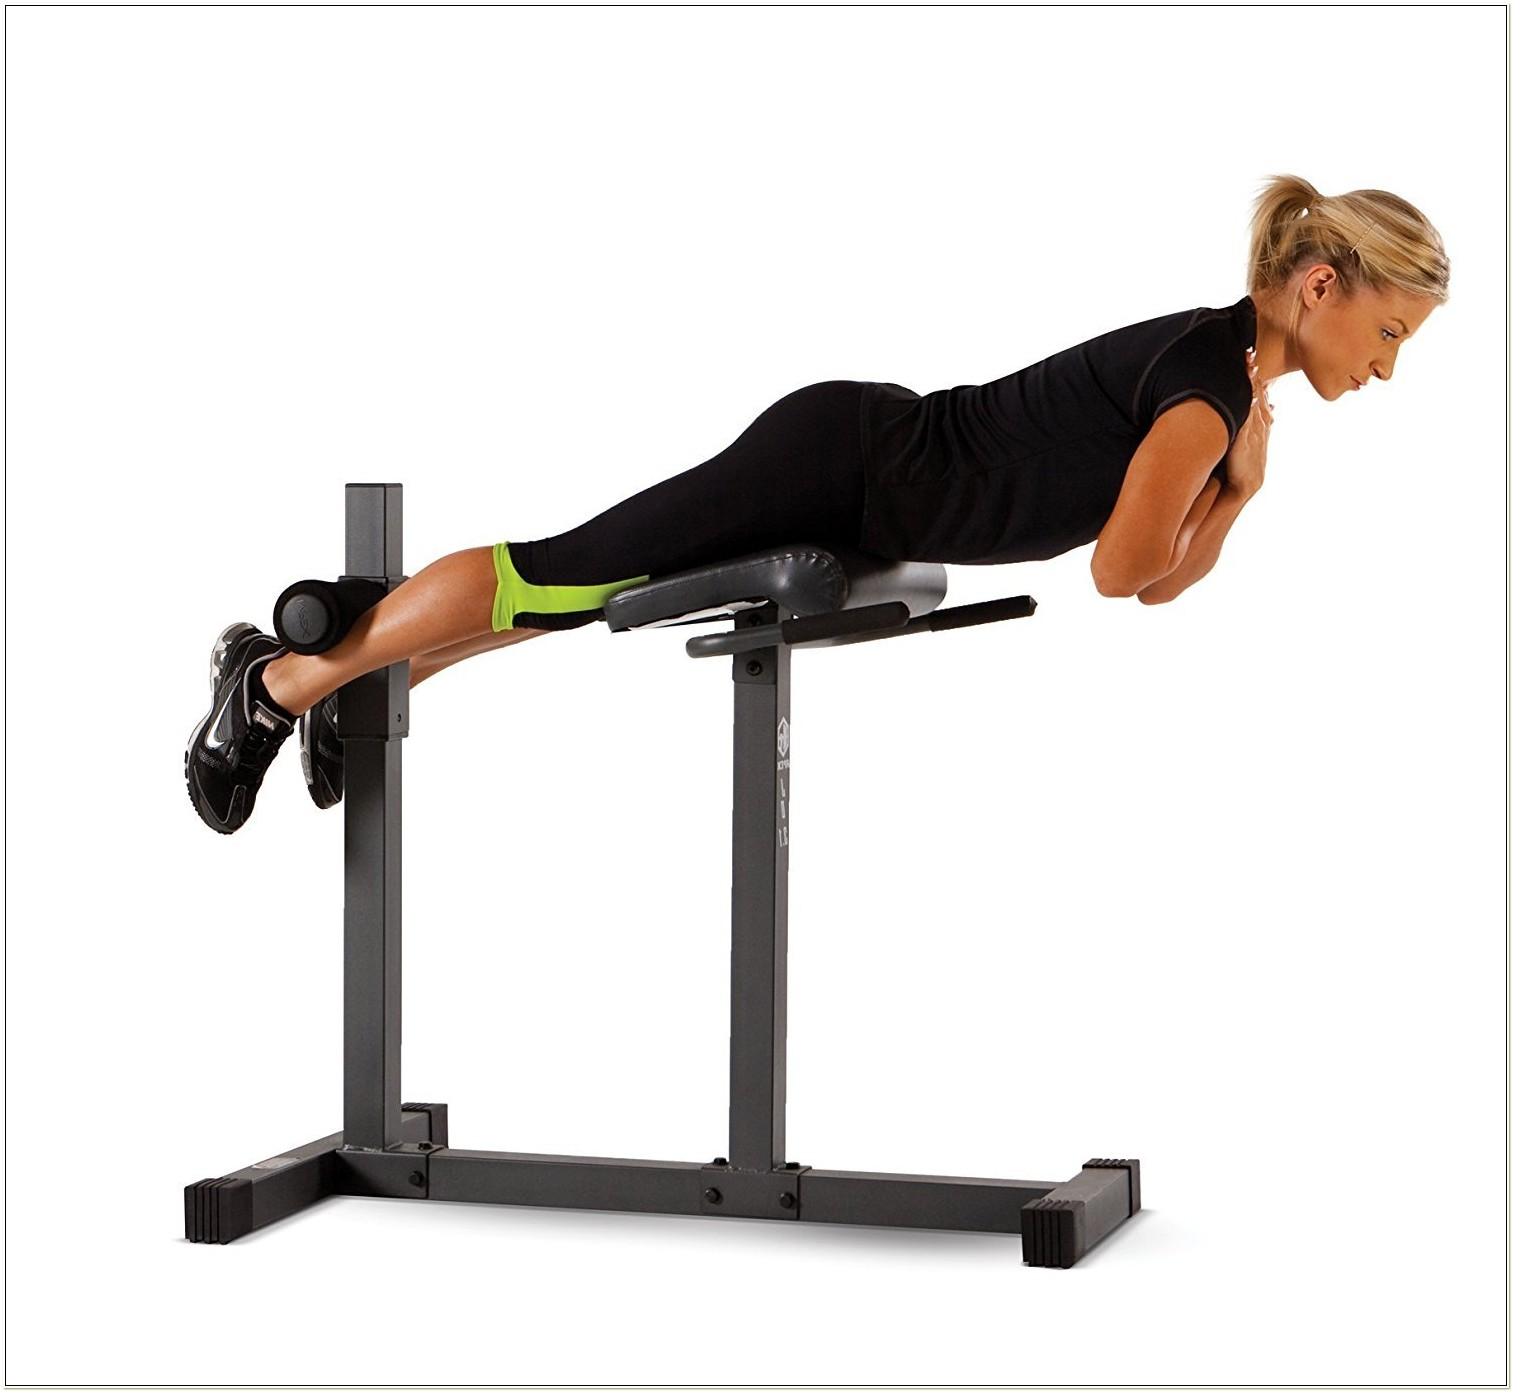 Apex Roman Chair Hyperextension Bench Back Workout